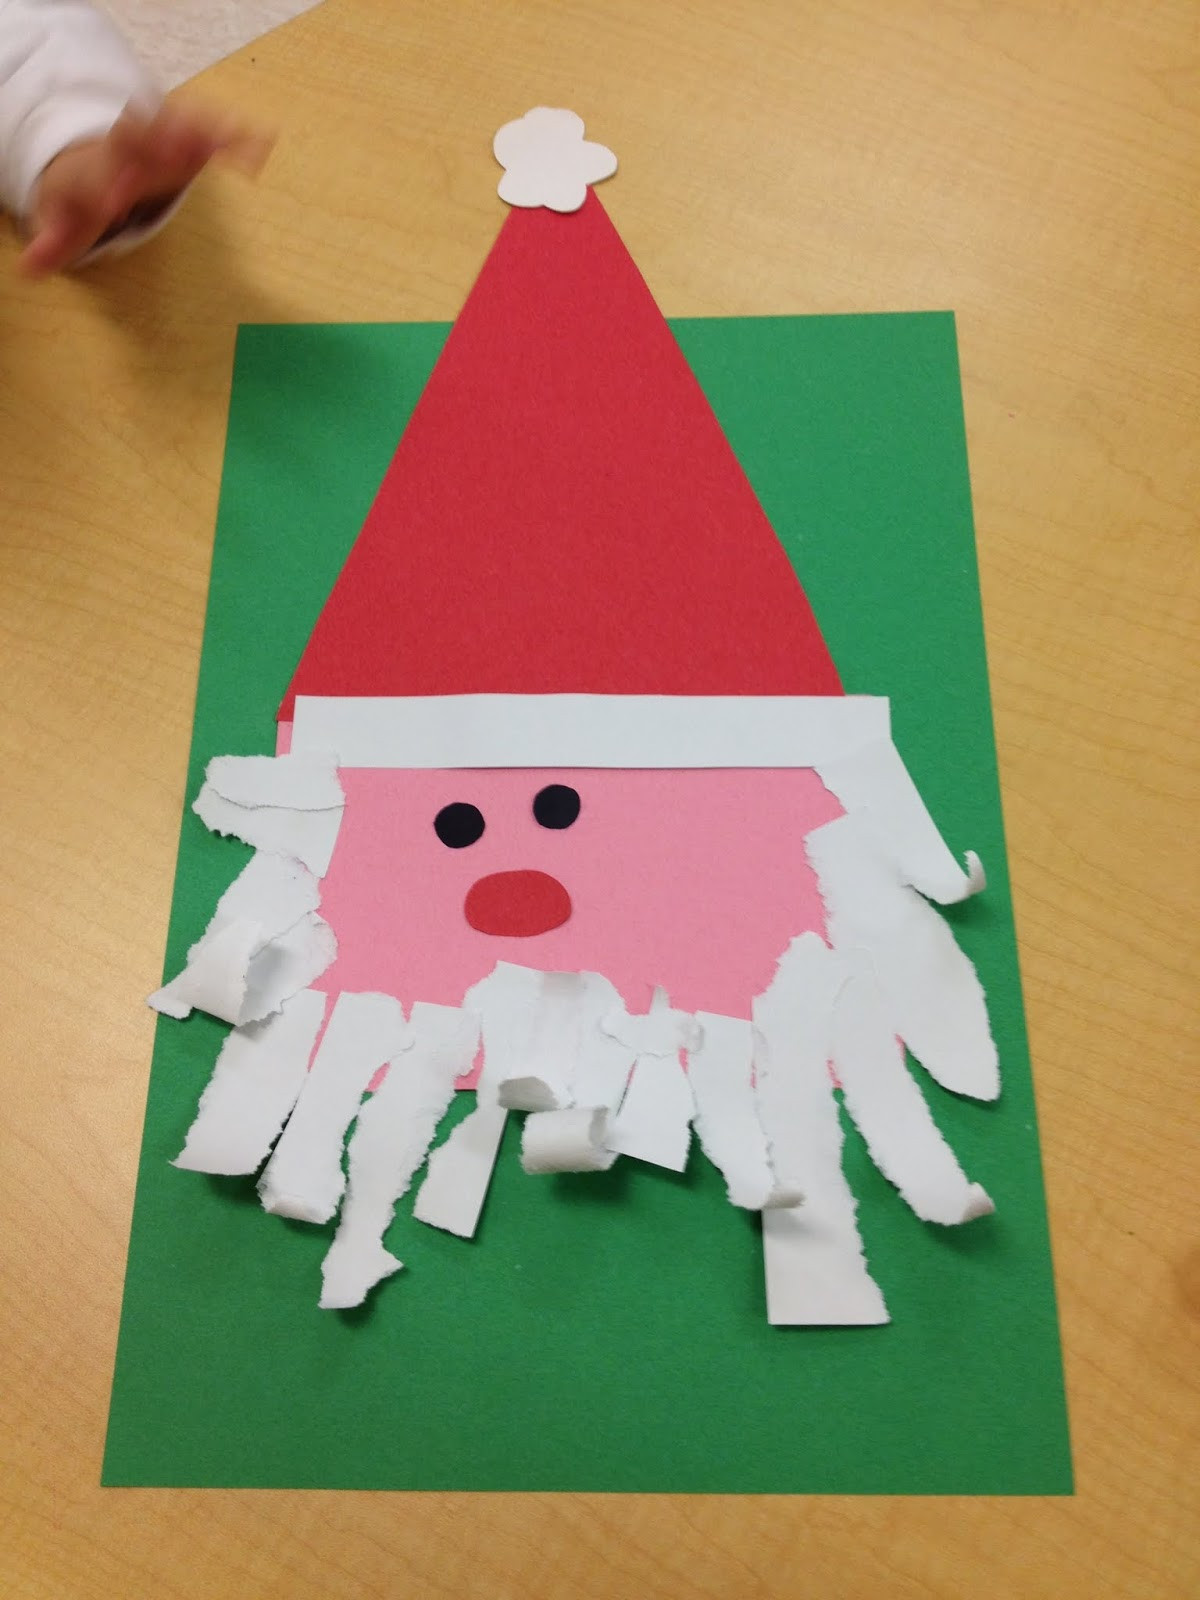 Best ideas about Christmas Arts And Craft Ideas For Preschoolers . Save or Pin Bonnie Kathryn Christmas Crafts Now.